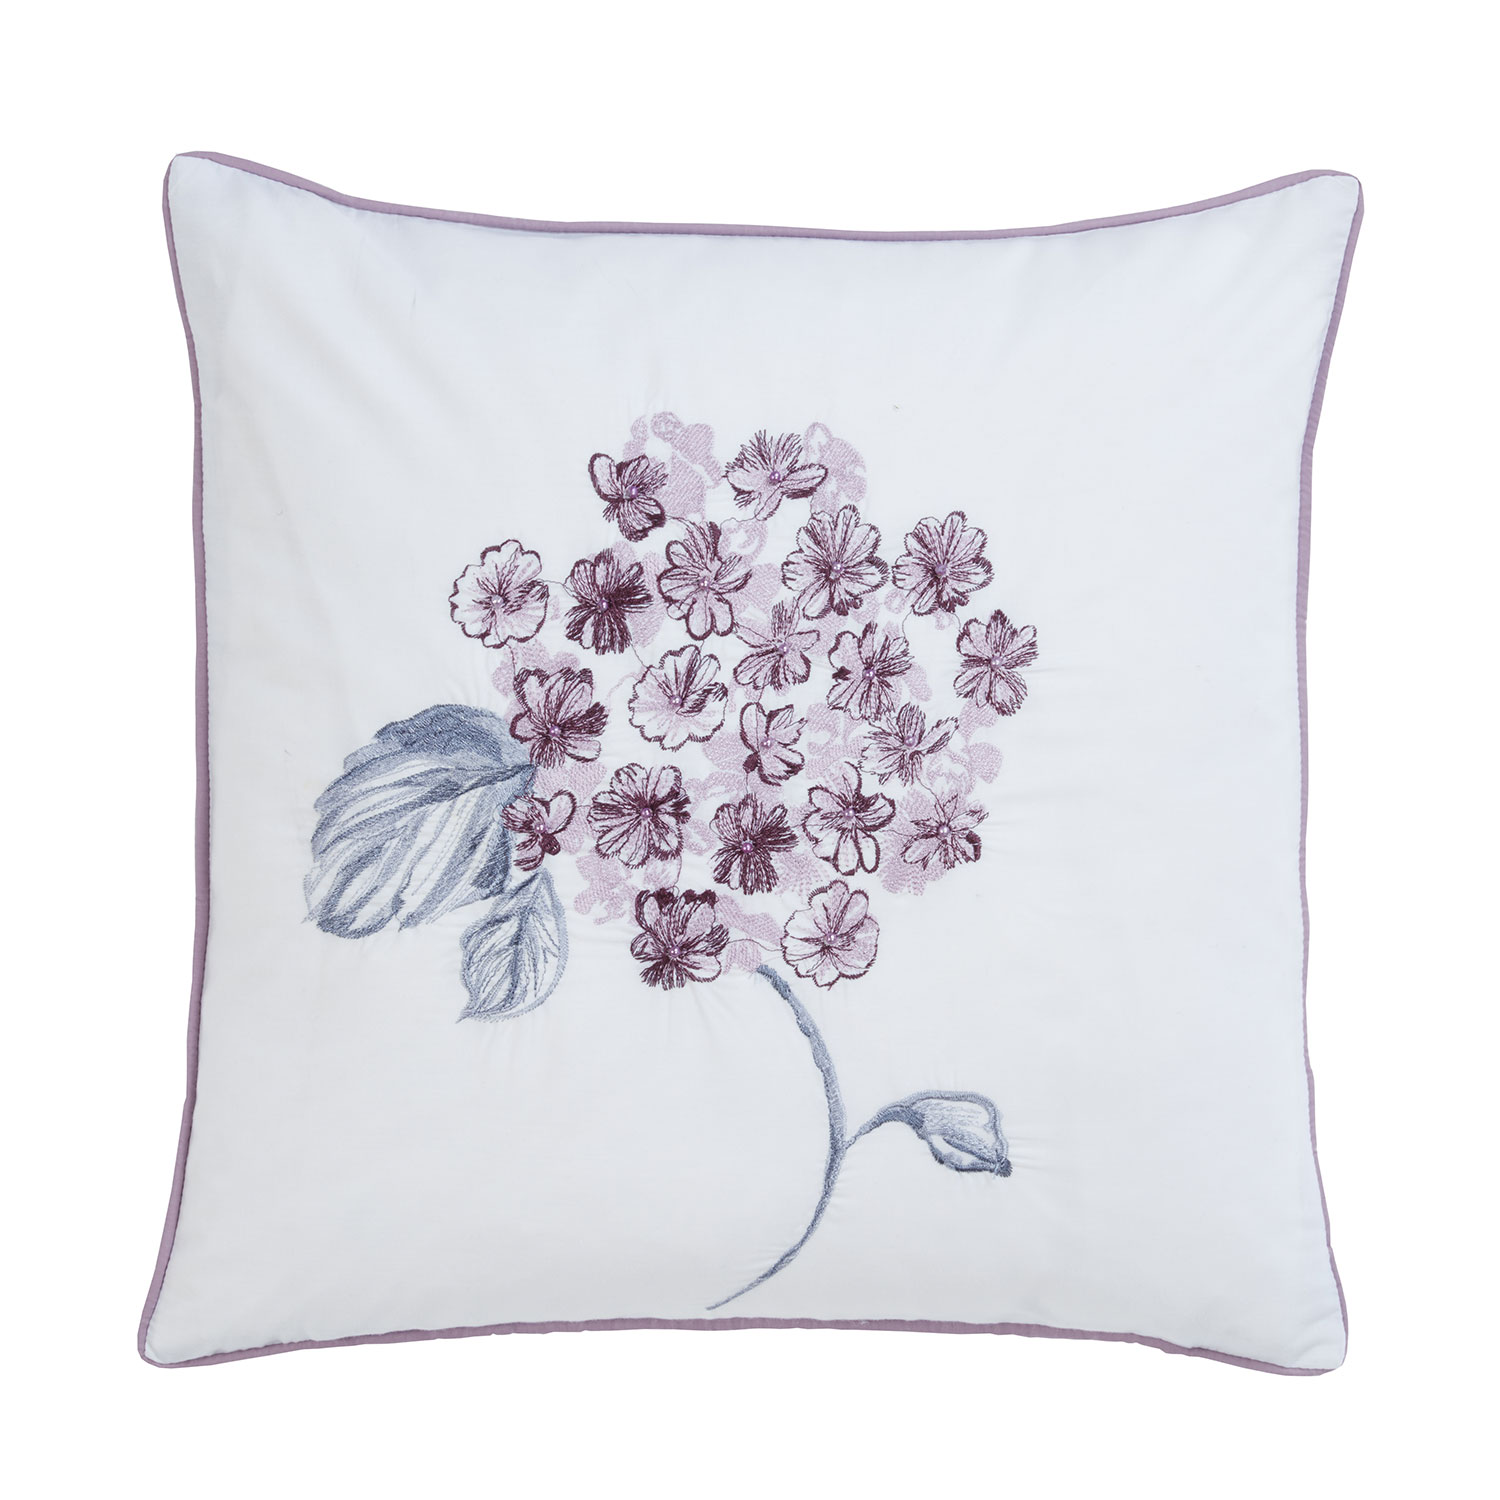 Abigail Plum Pure Cotton Luxury Filled Square Cushion